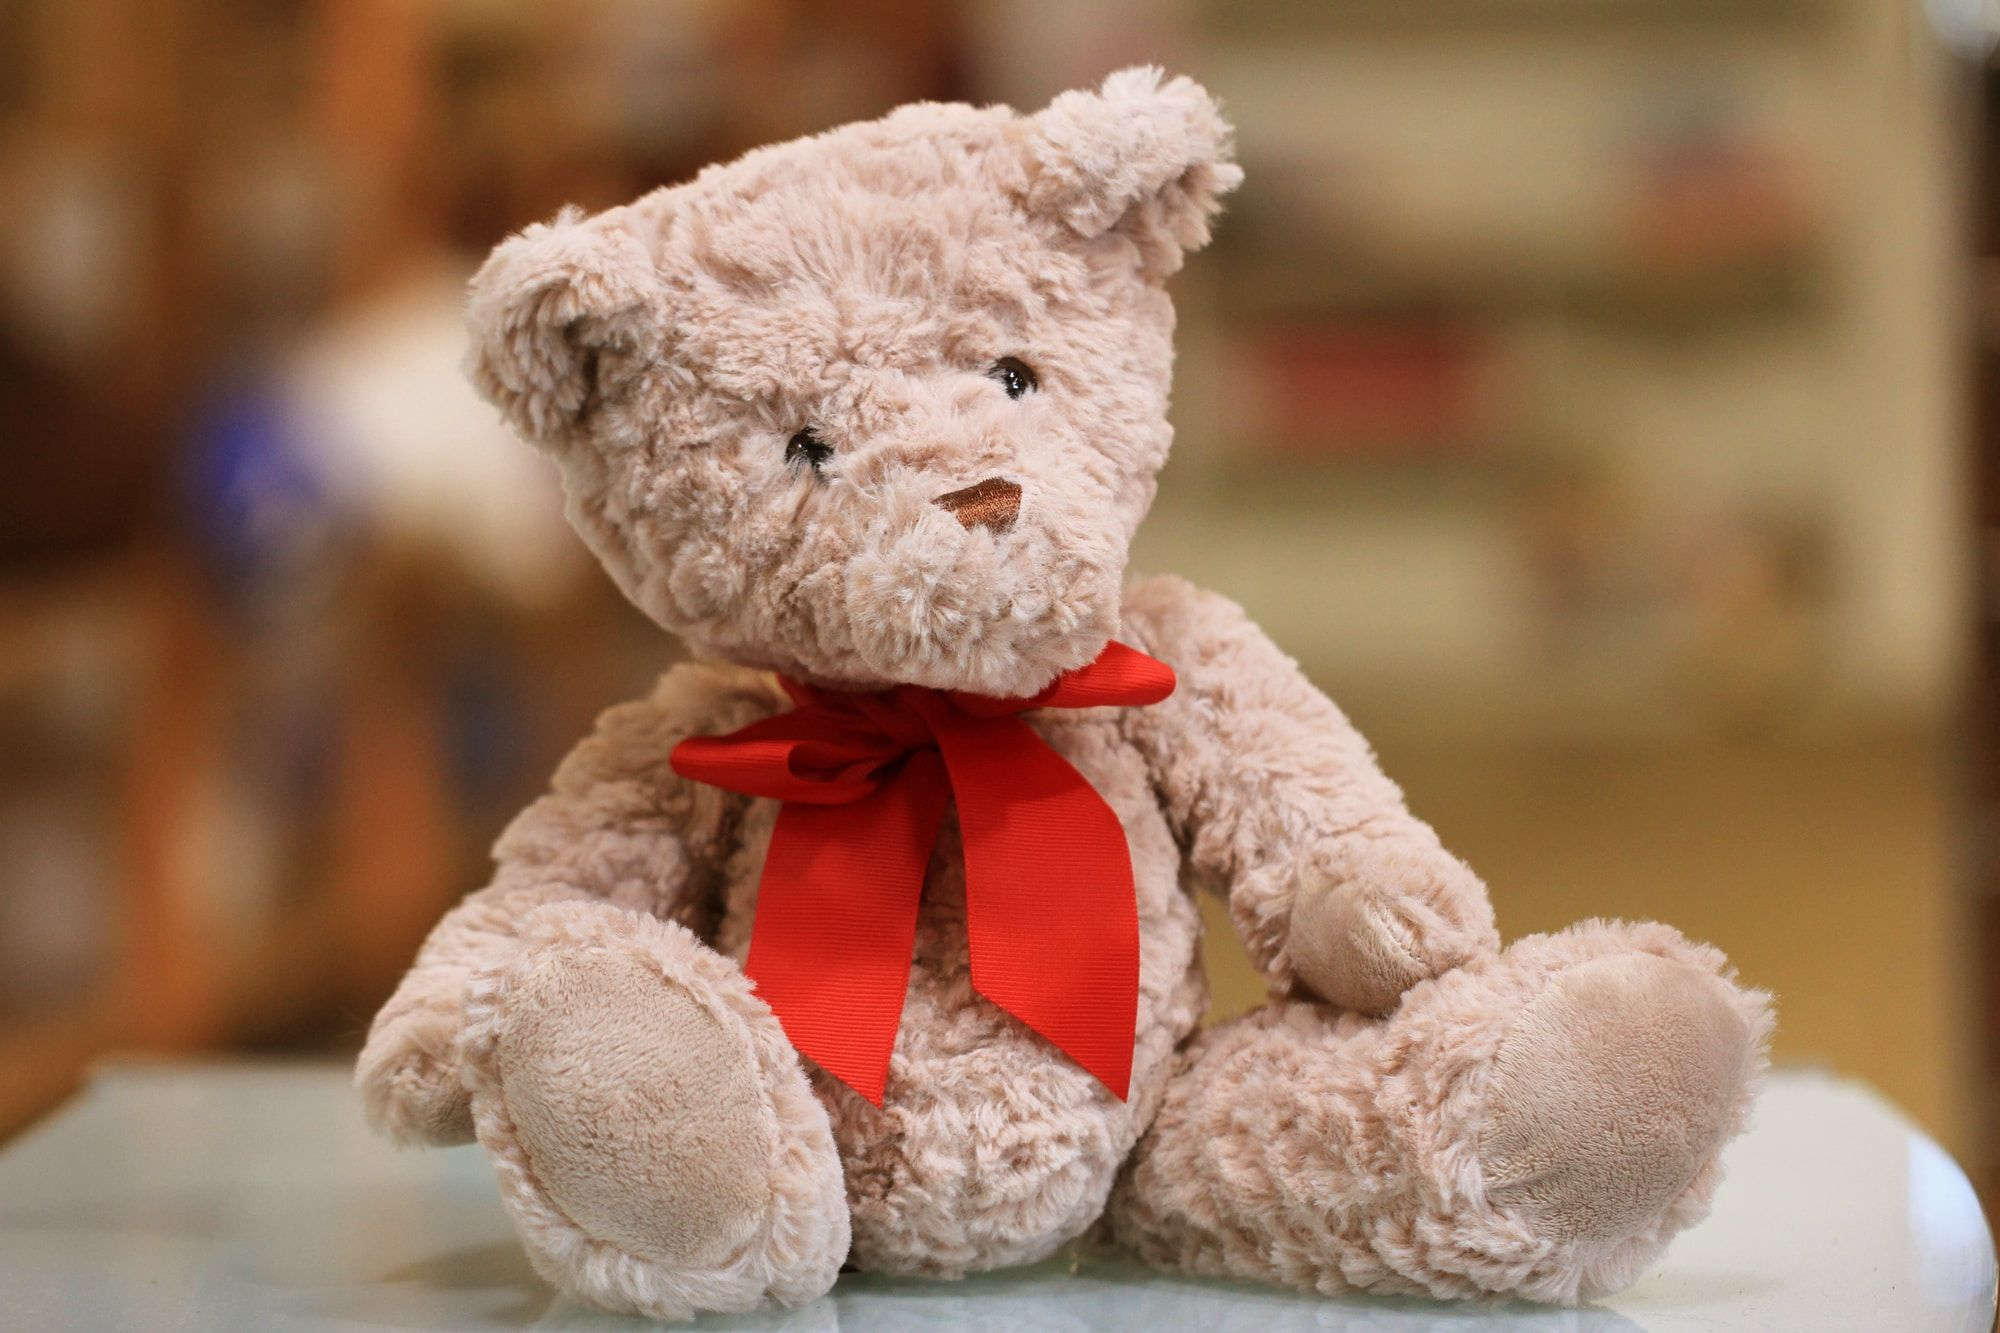 Teddy & Soft toy cleaning Pearls Drycleaners